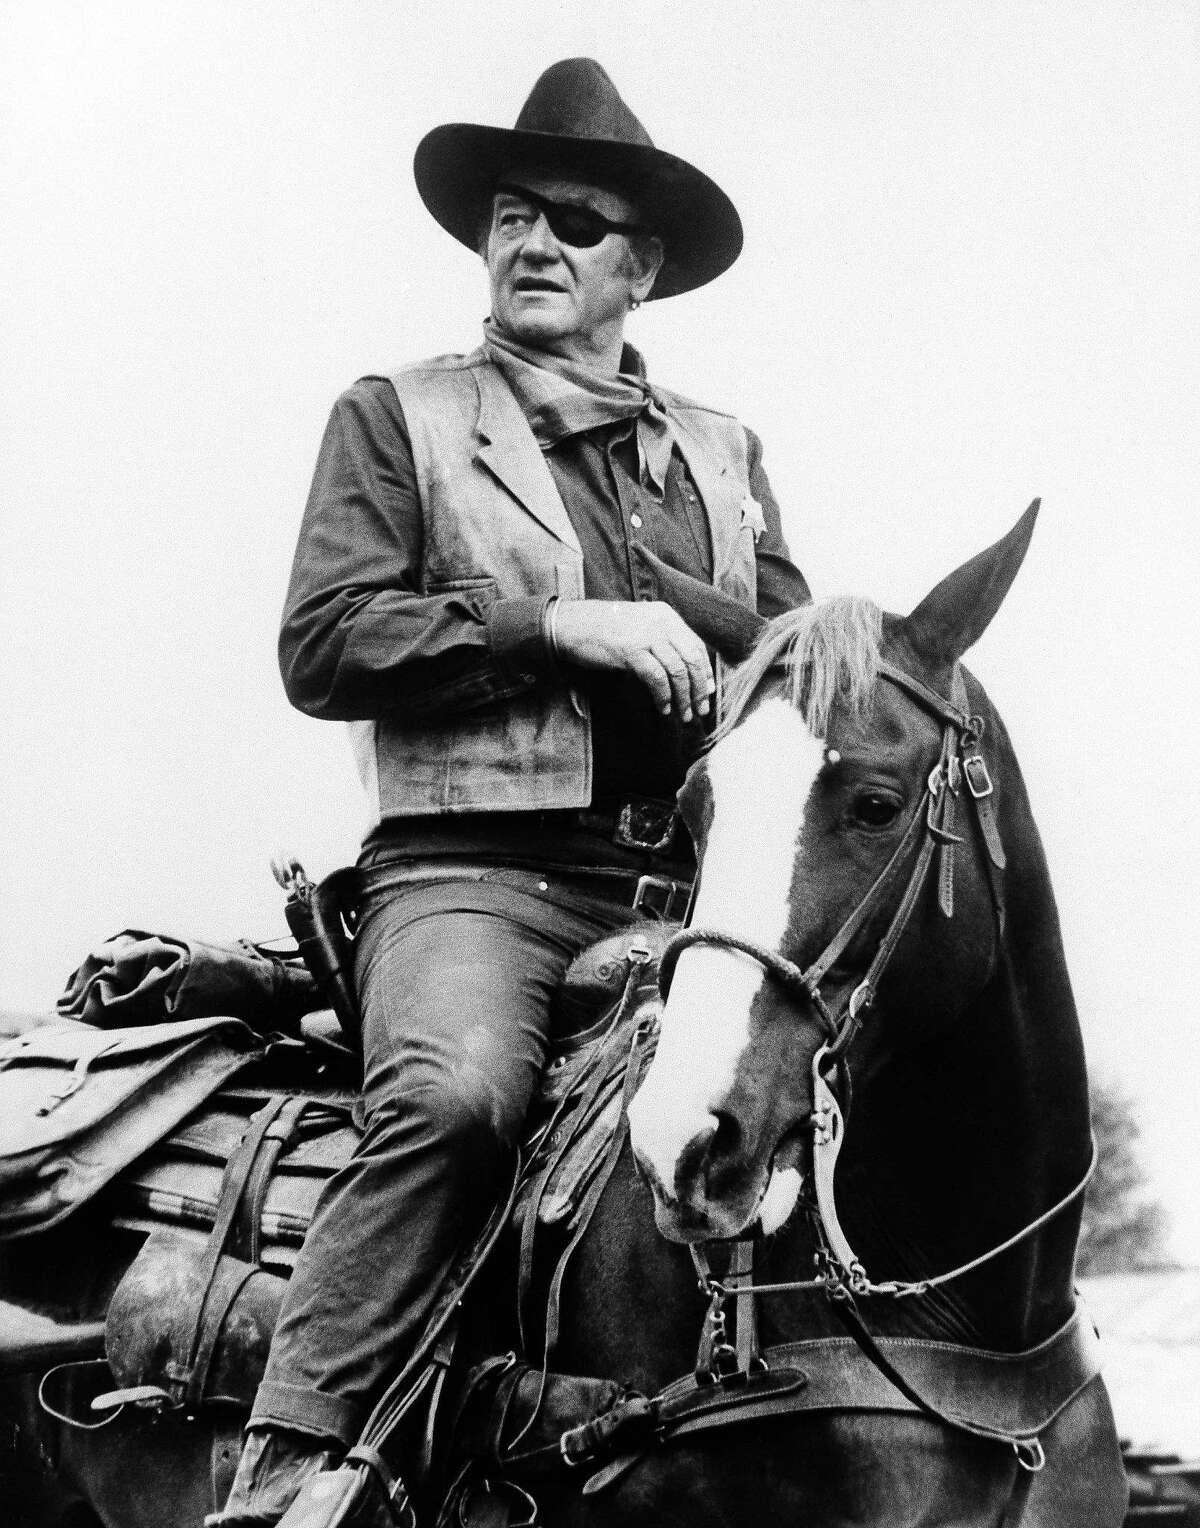 FILE - In this 1969 publicity image released by Paramount Pictures, John Wayne appears in a scene from